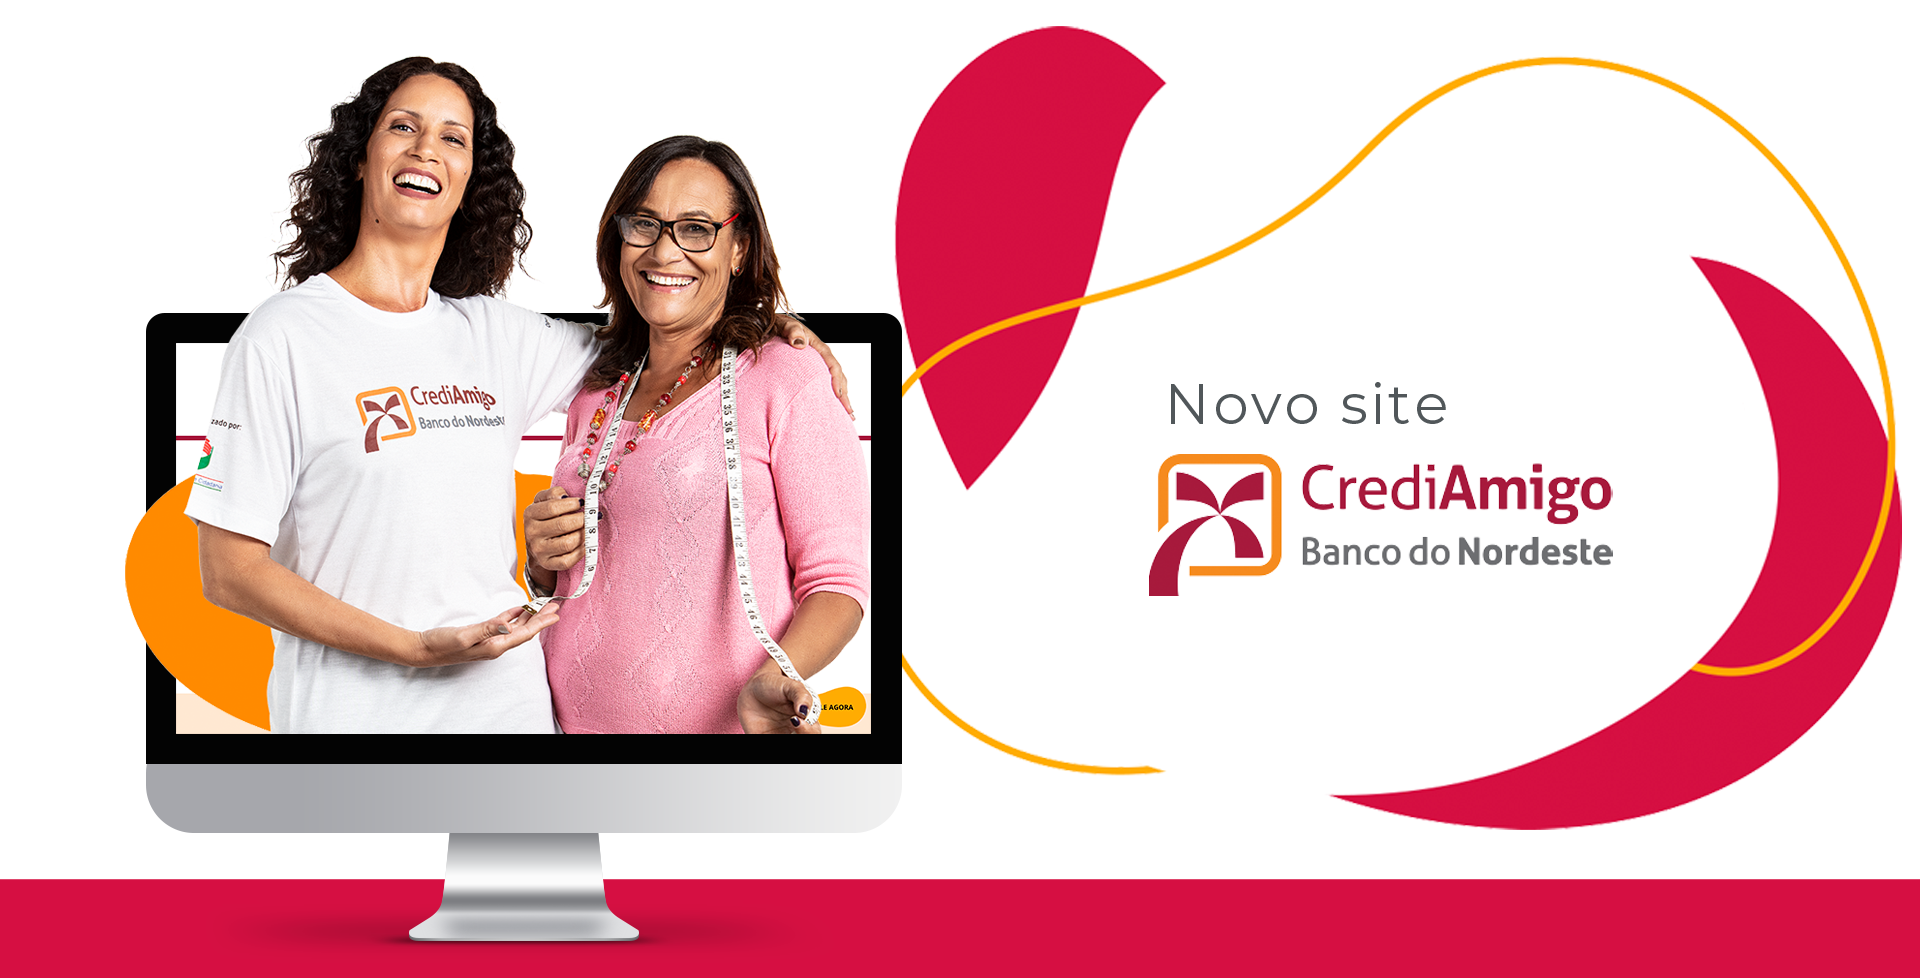 Novo site CrediAmigo – Banco do Nordeste